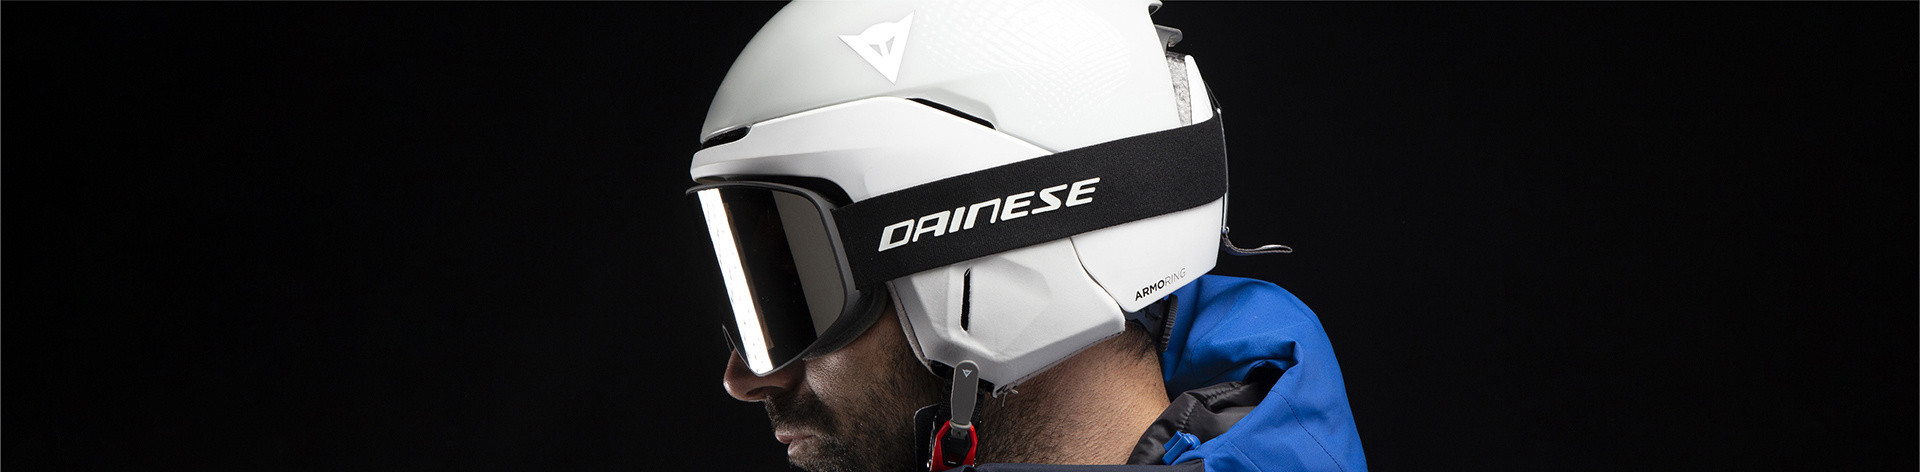 Dainese Winter Sports Helmets